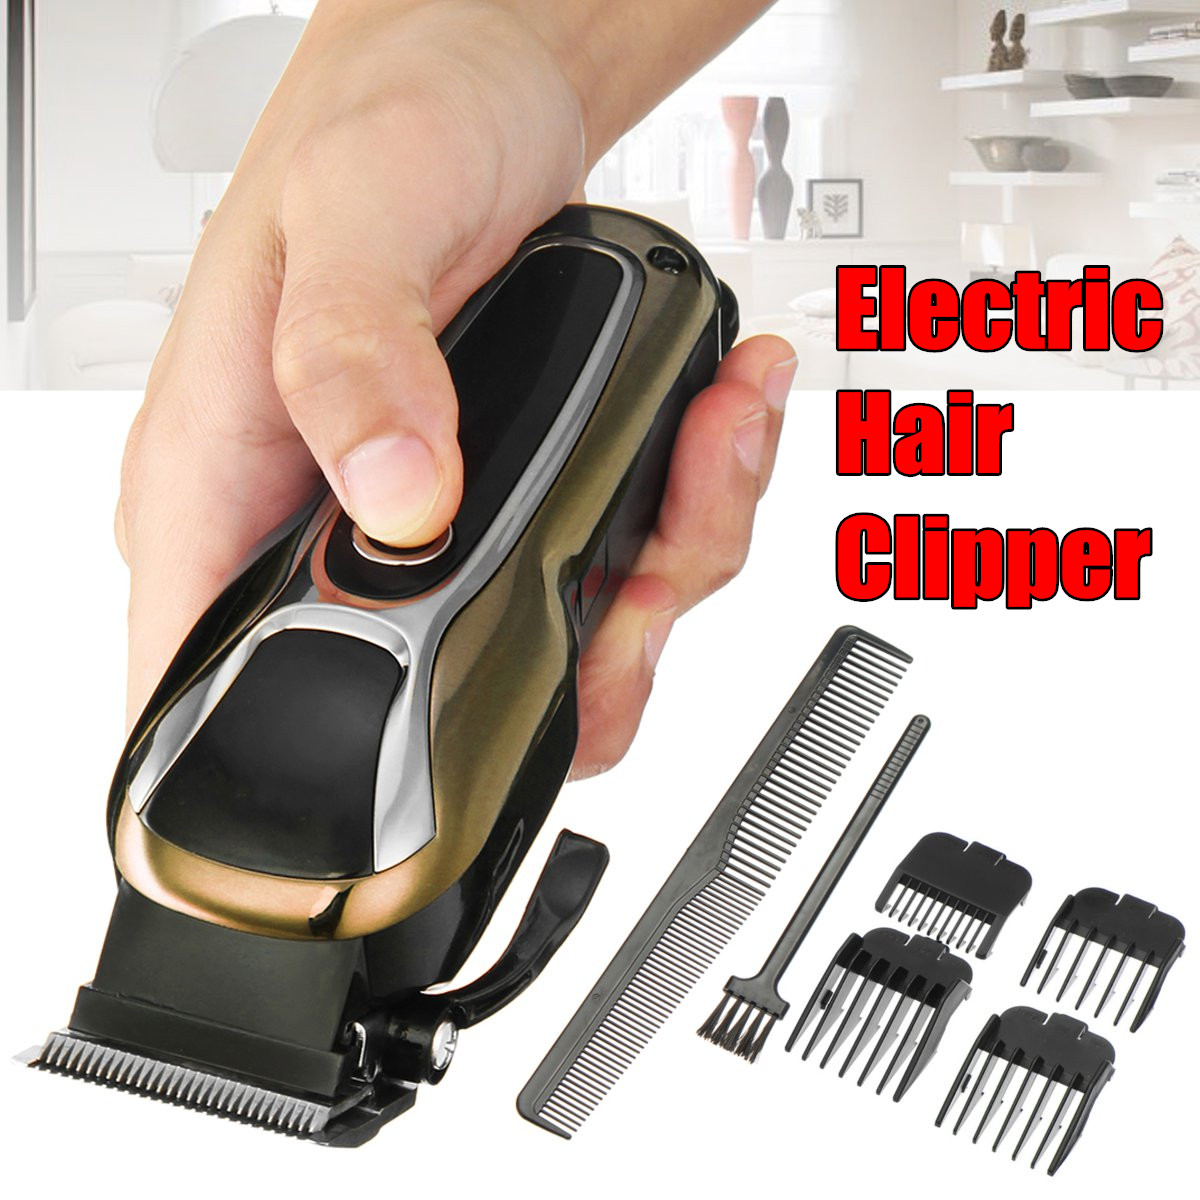 Surker SK-803 Electric Hair Clipper